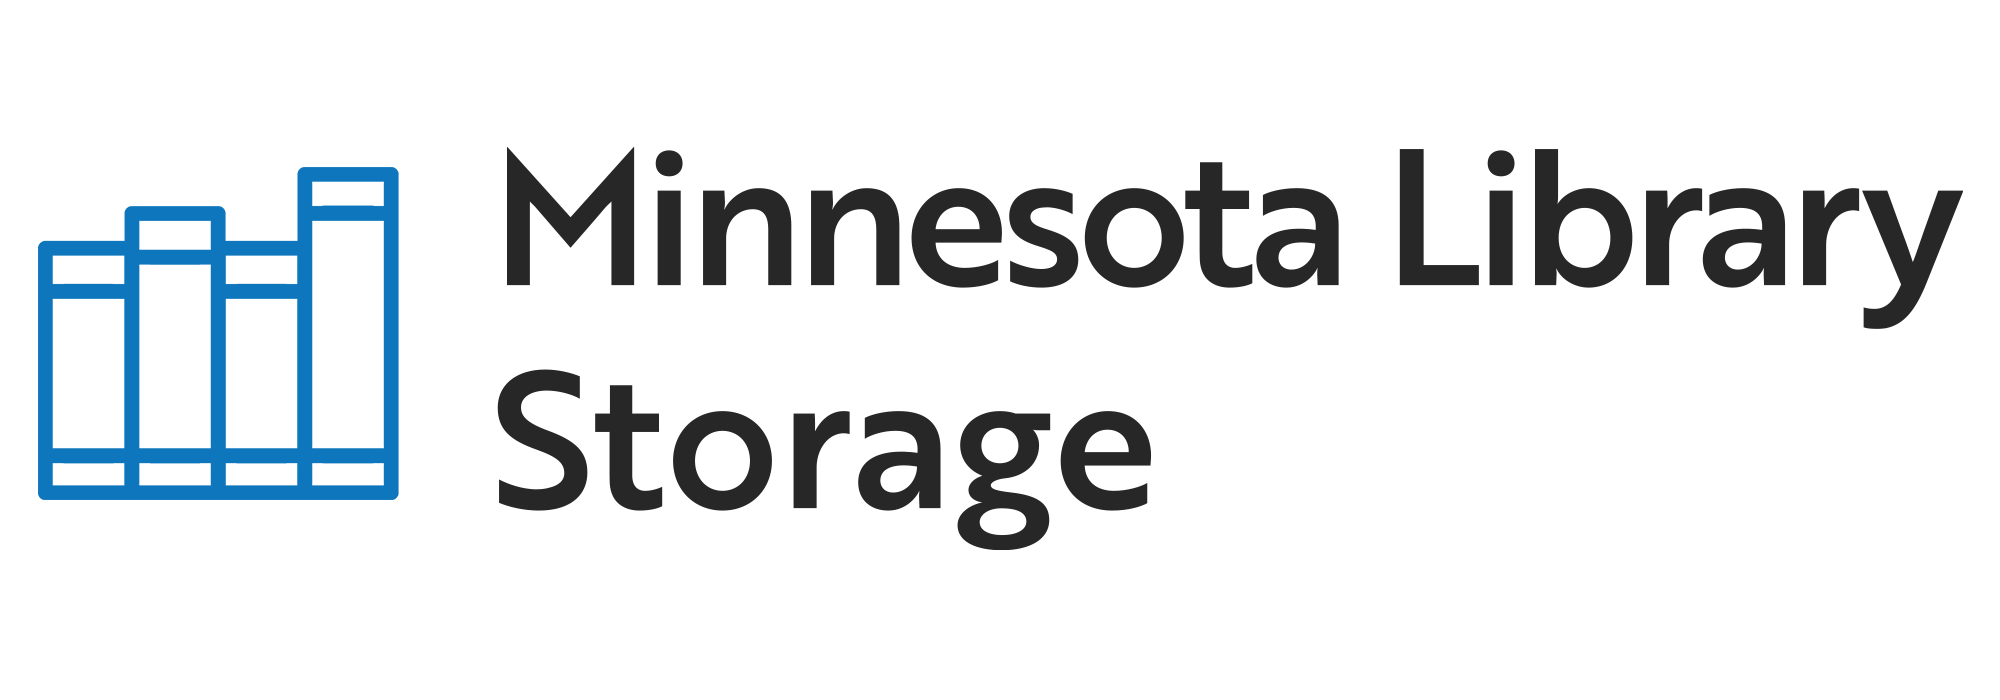 Minnesota Library Storage logo.